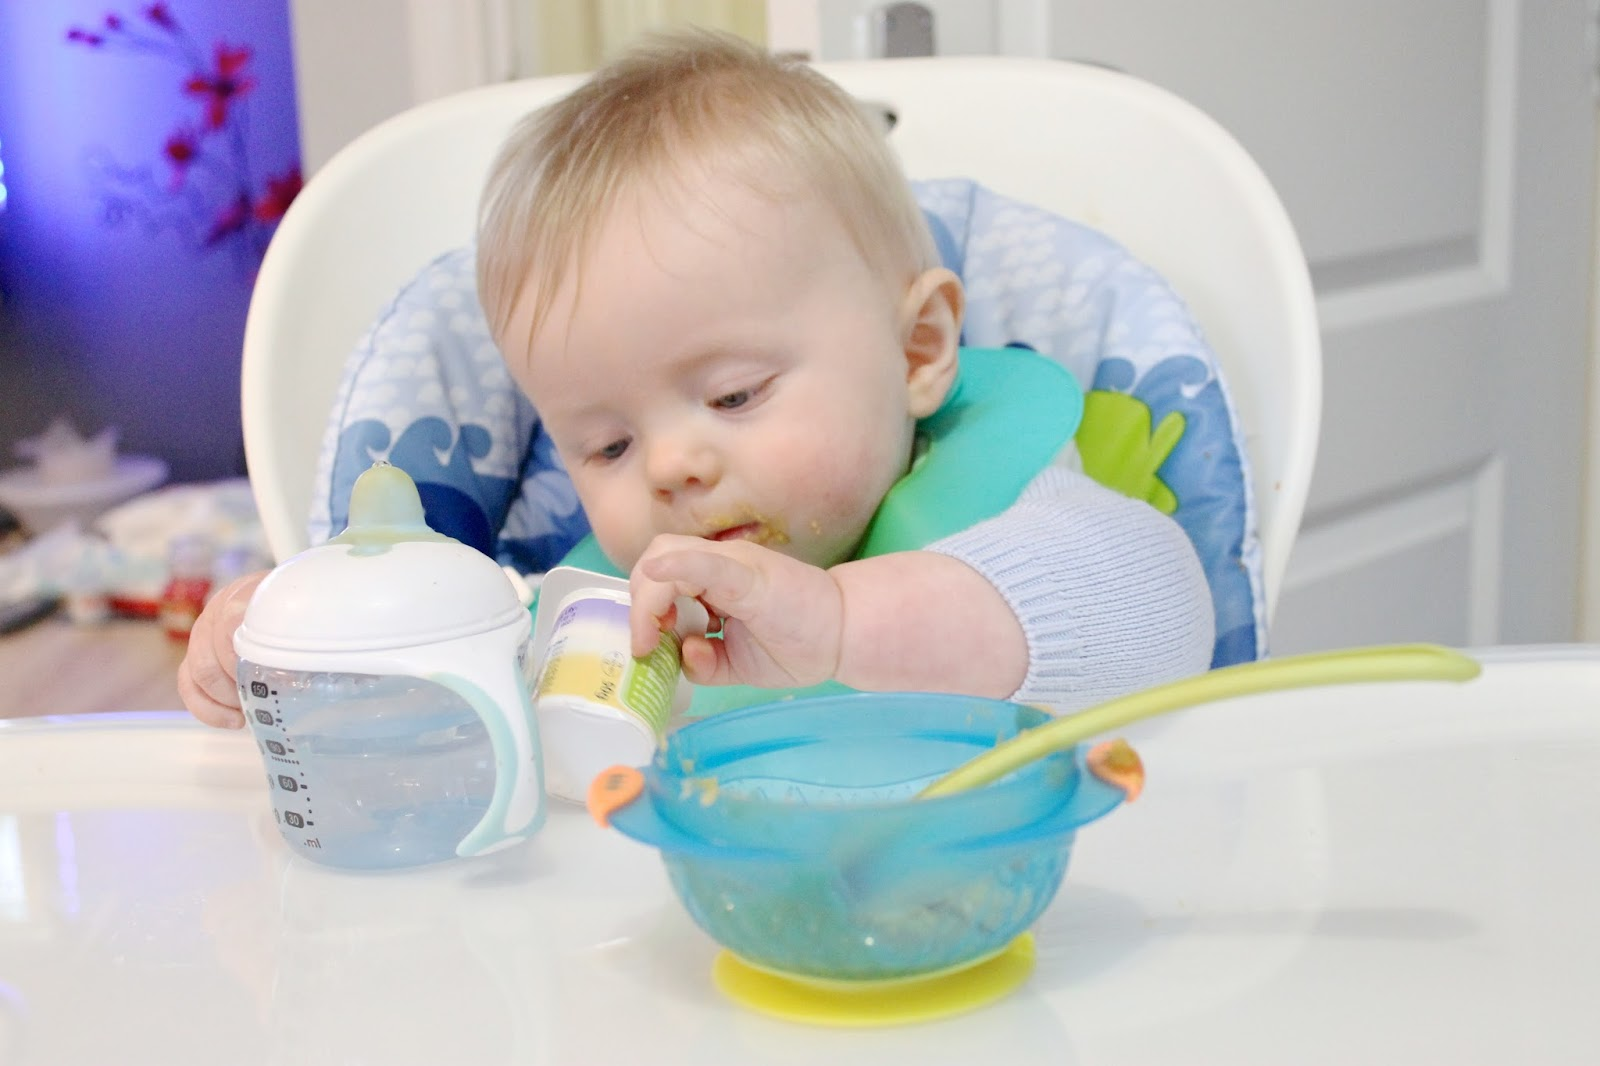 weaning, 6-9 months weaning, vegetarian baby, what to feed a vegetarian baby, vegetarian baby recipe ideas, vegetarian meals for babies